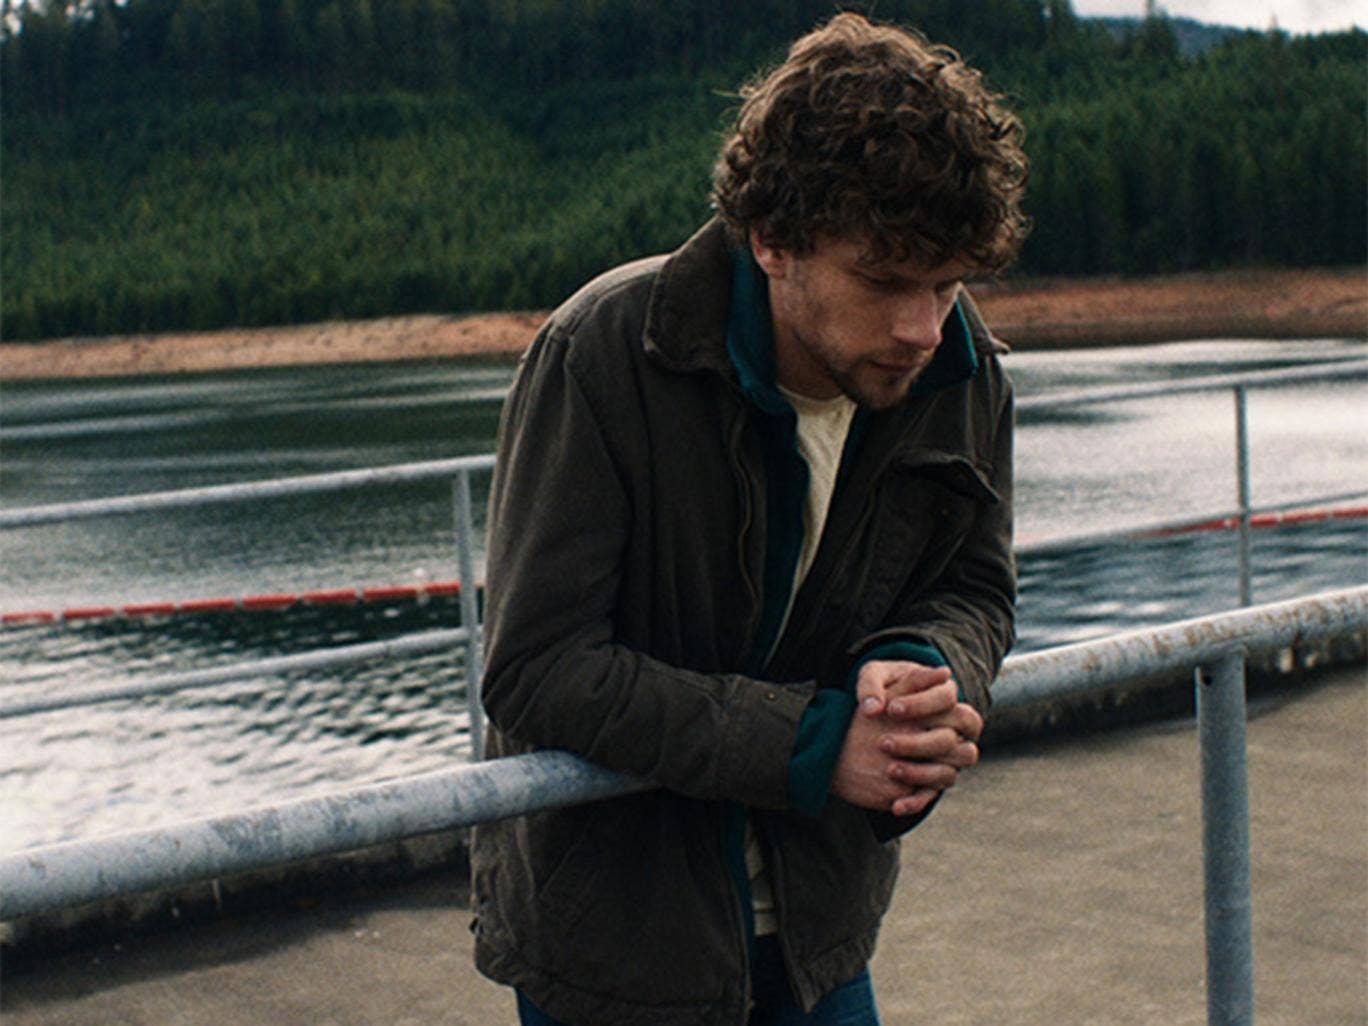 Increasingly violent and furtive: Jesse Eisenberg in Night Moves